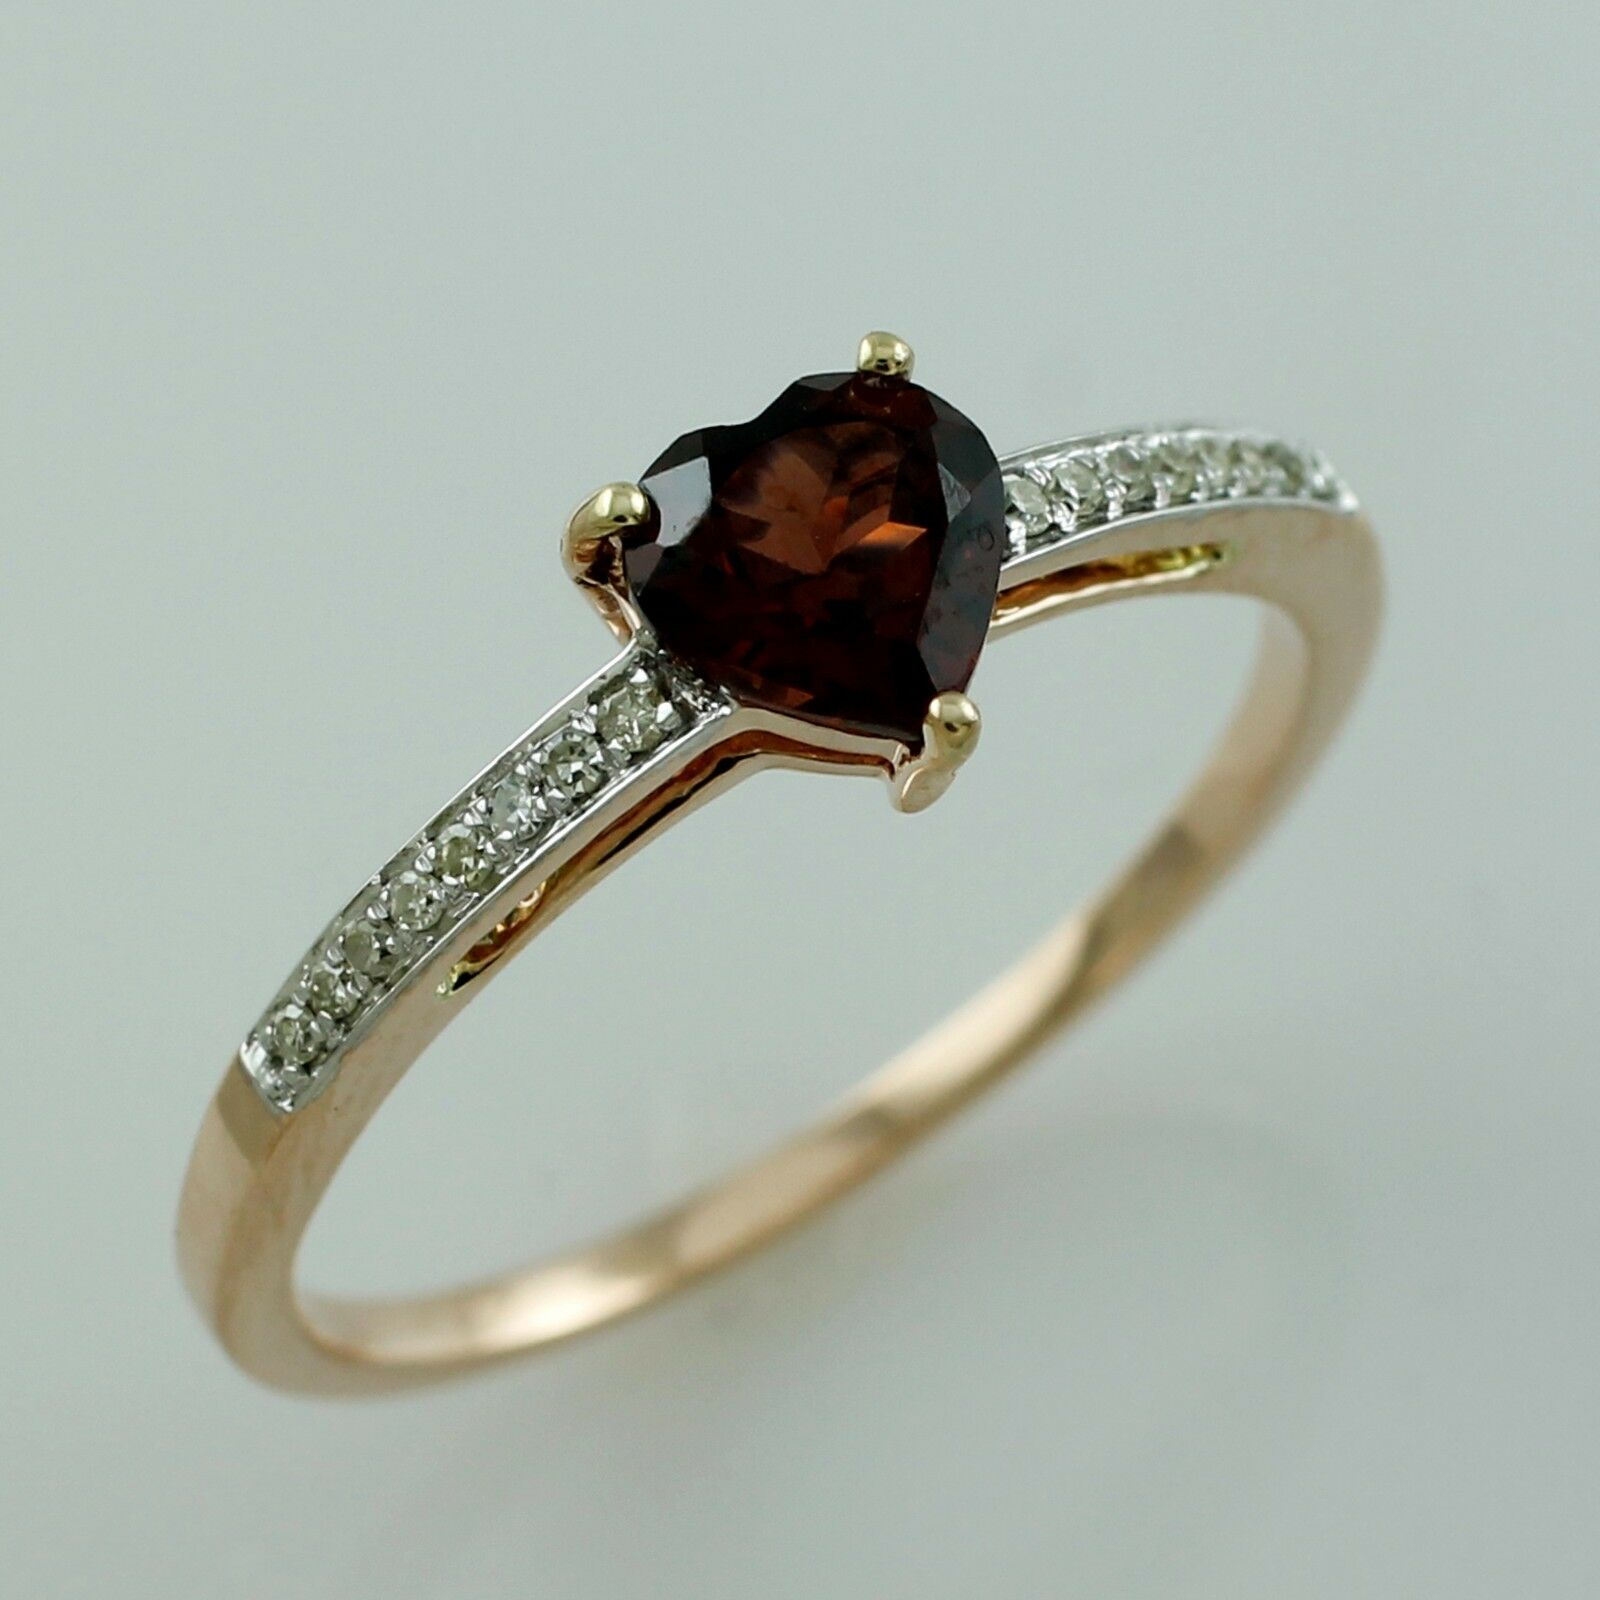 Red Garnet 1.21 Ct With Diamond Gemstone Ring Natural gold Occasion Lady Jewelry